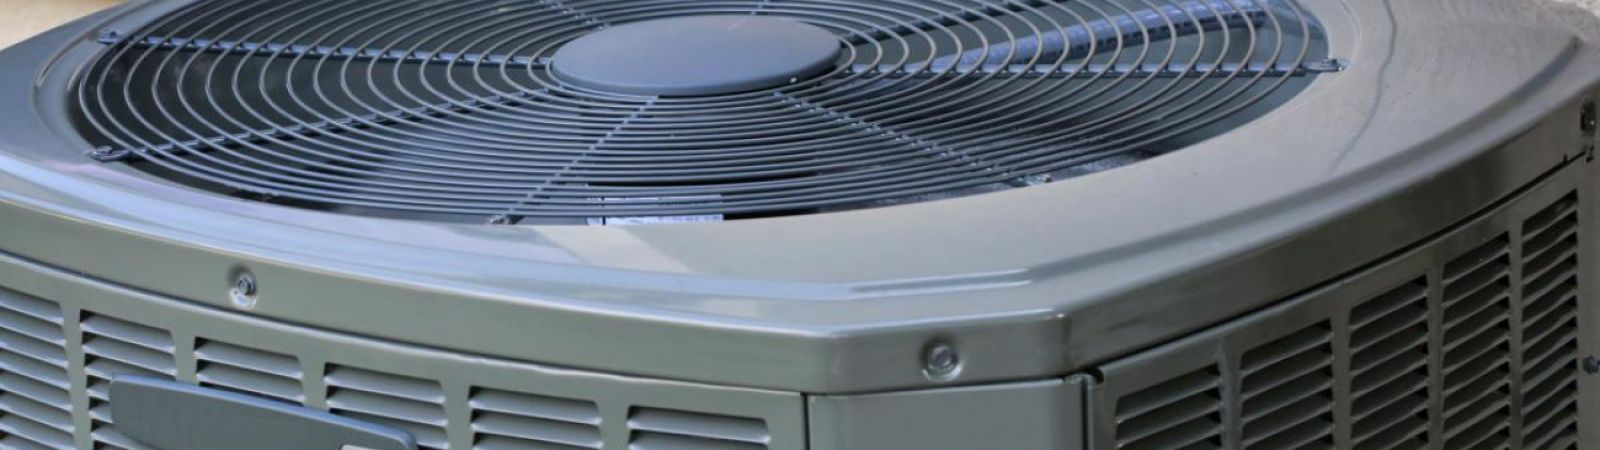 The Cold, Hard Truth About Air Conditioners